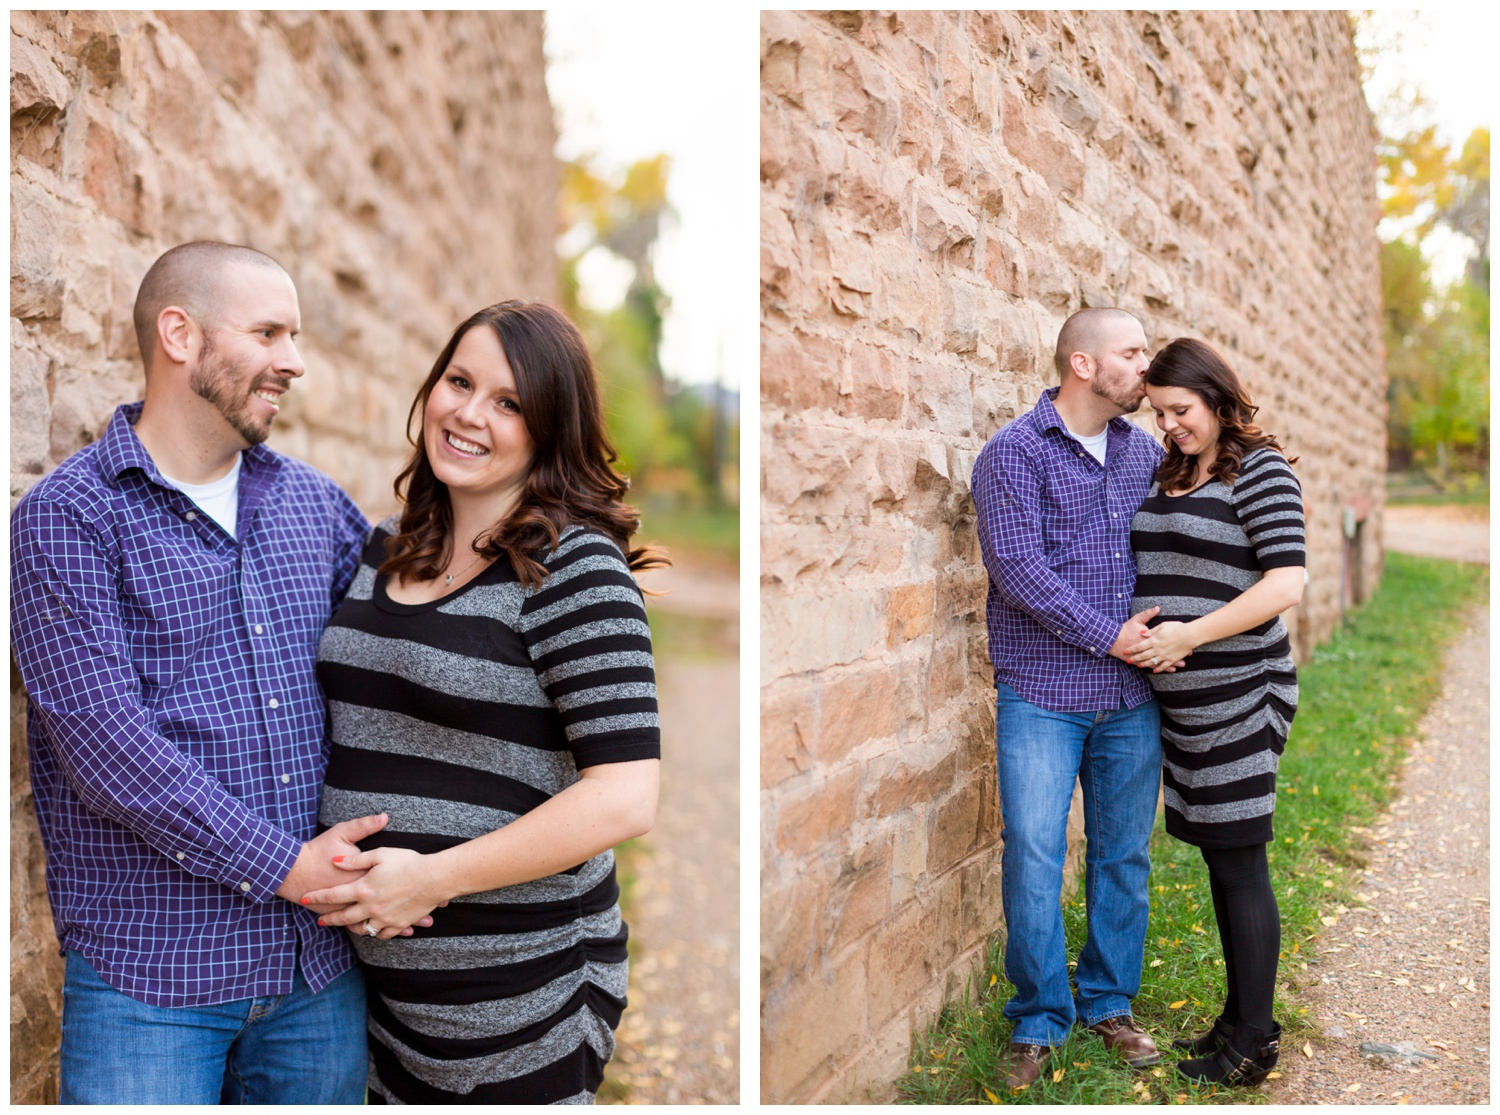 Fort Collins Maternity Photography10.jpg